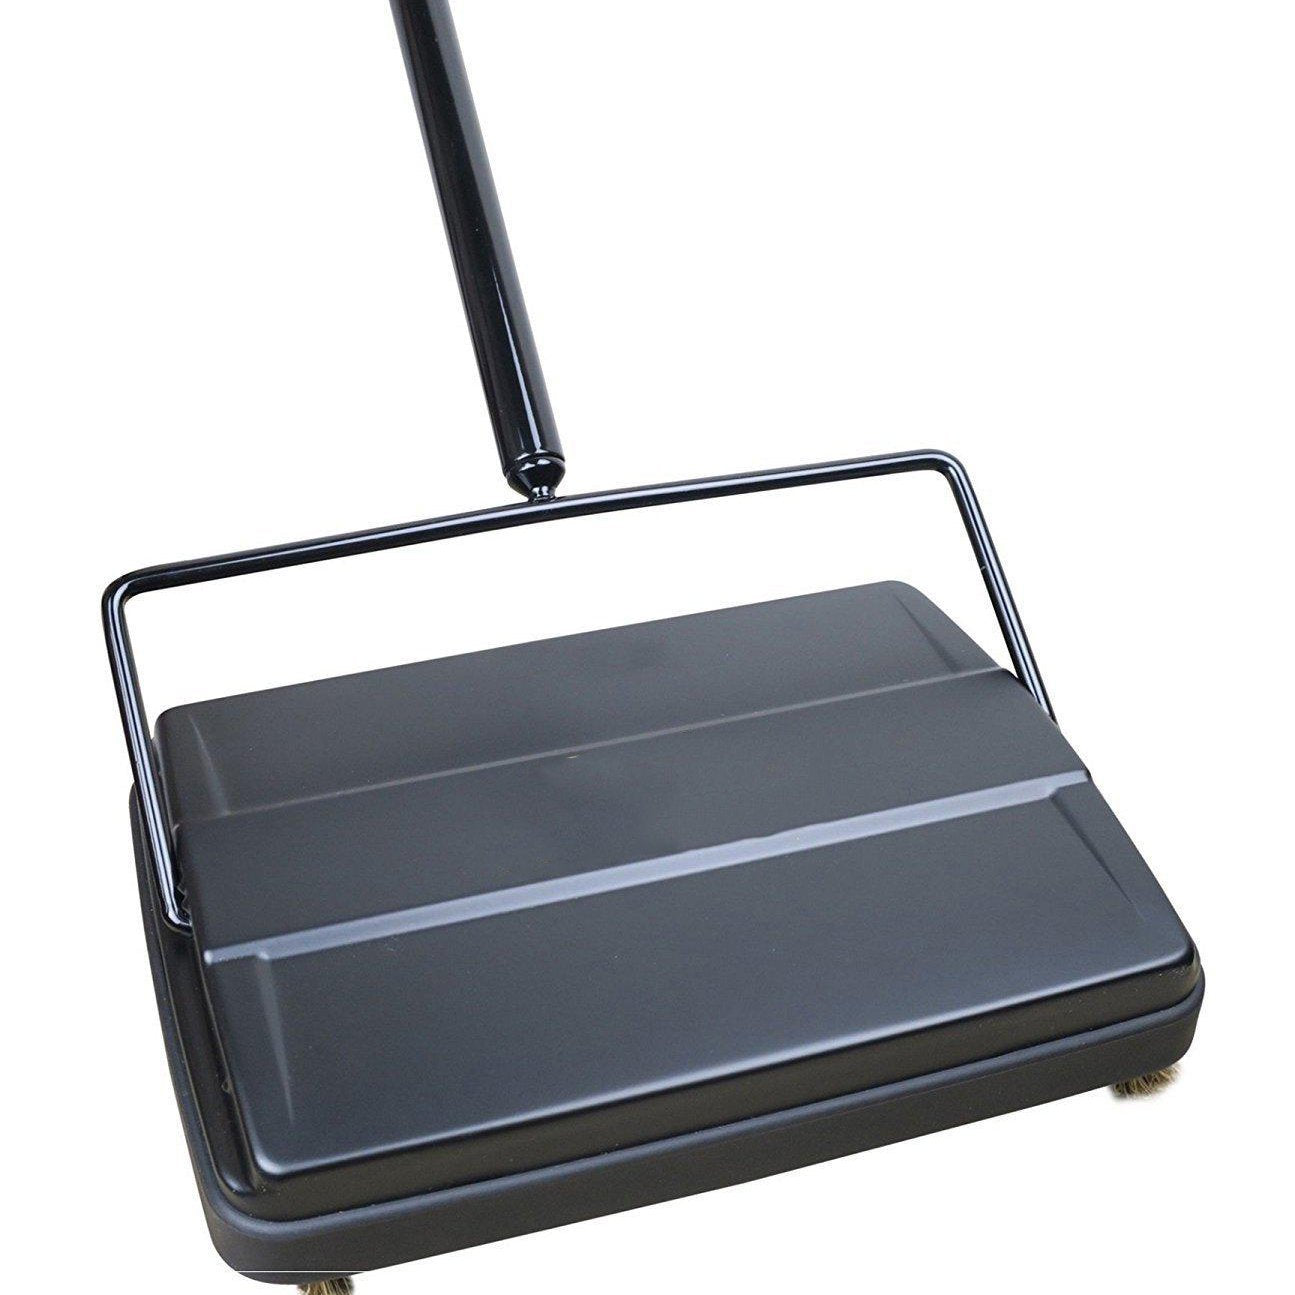 Electrostatic Carpet & Floor Sweeper - 9 Cleaning Path - Black